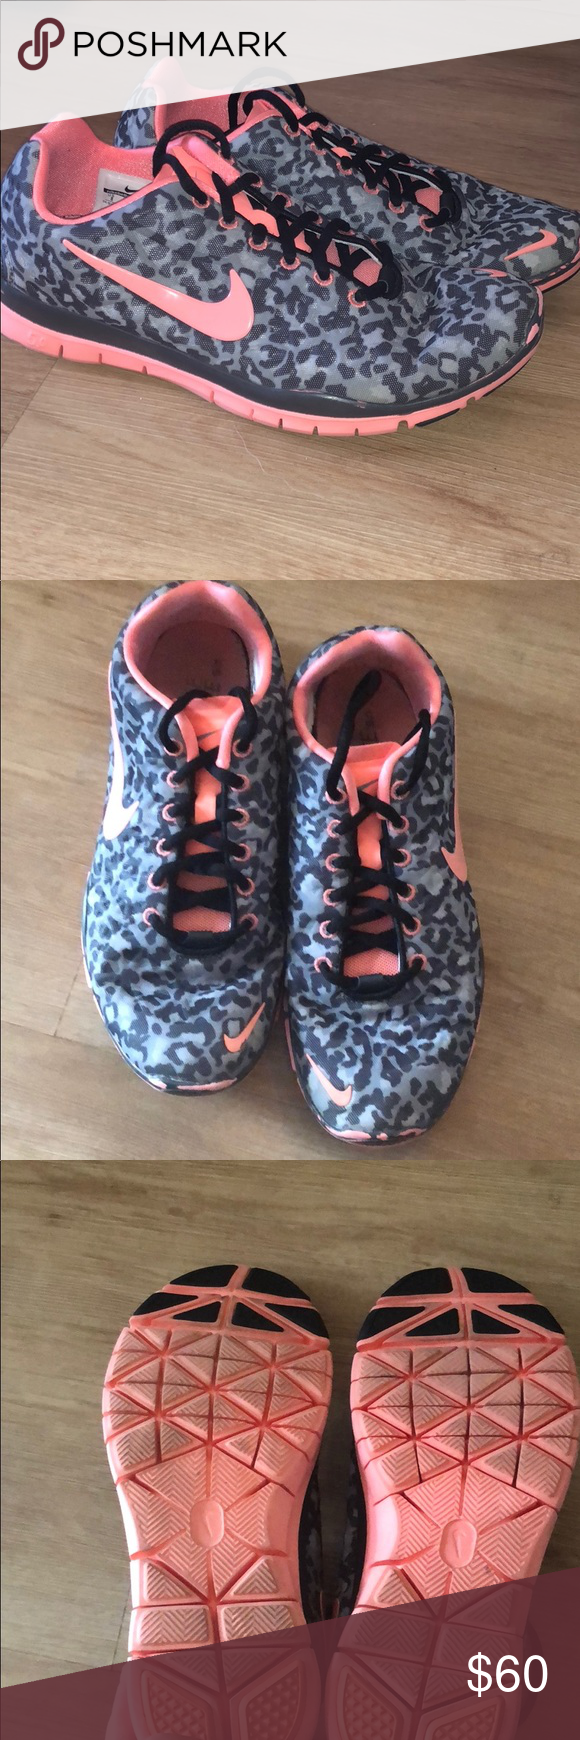 check out c7dc6 10c85 Nike Free run 5.0 Snow leopard print. Cute and fun Nike Free running shoe.  Only worn a handful of times. In great condition. Nike Shoes Sneakers